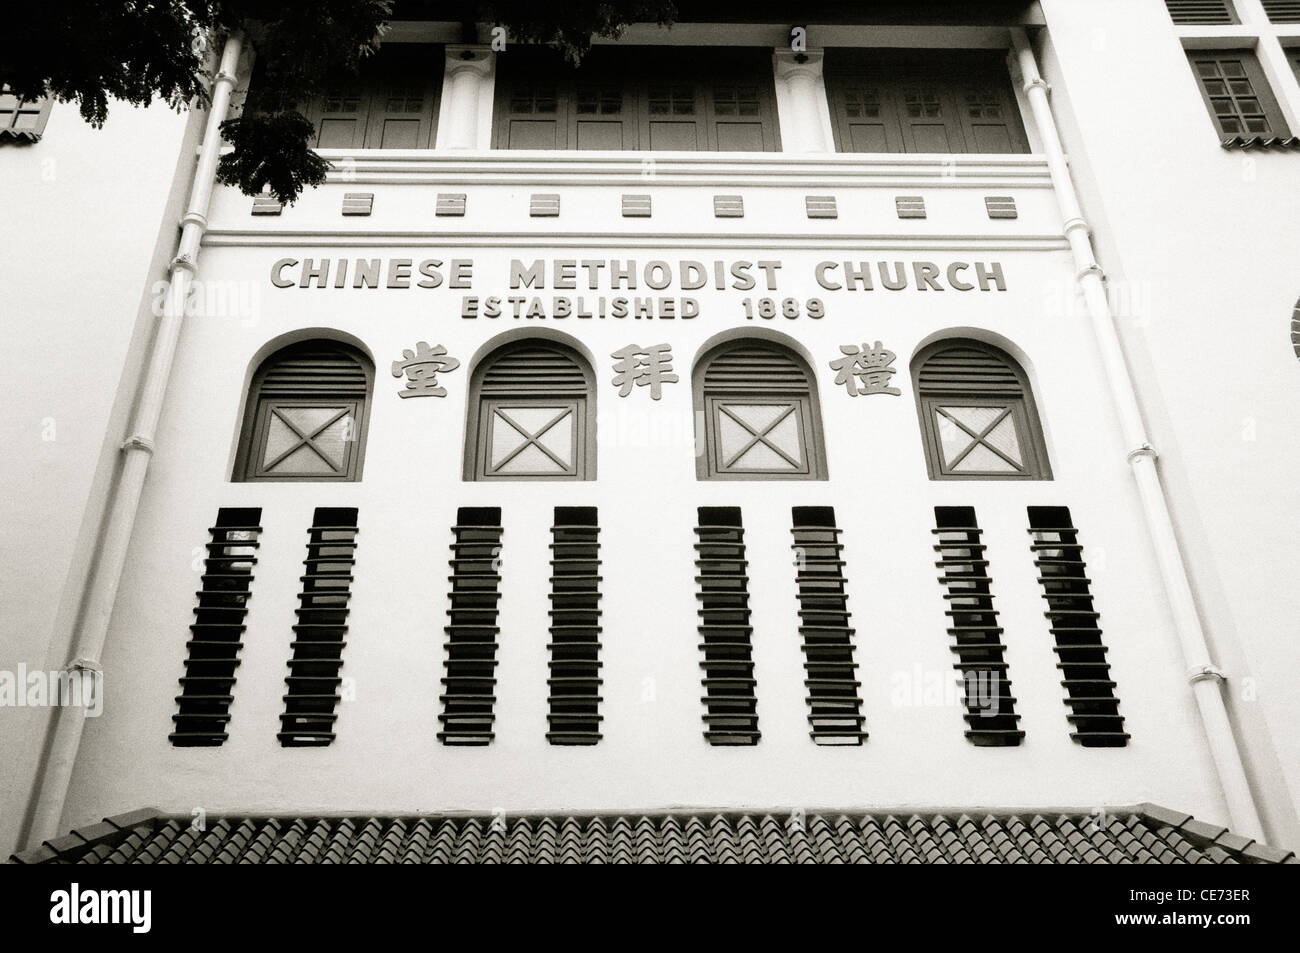 Documentary Photography - Telok Ayer Chinese Methodist Church in Chinatown in Singapore in Southeast Asia Far East. - Stock Image